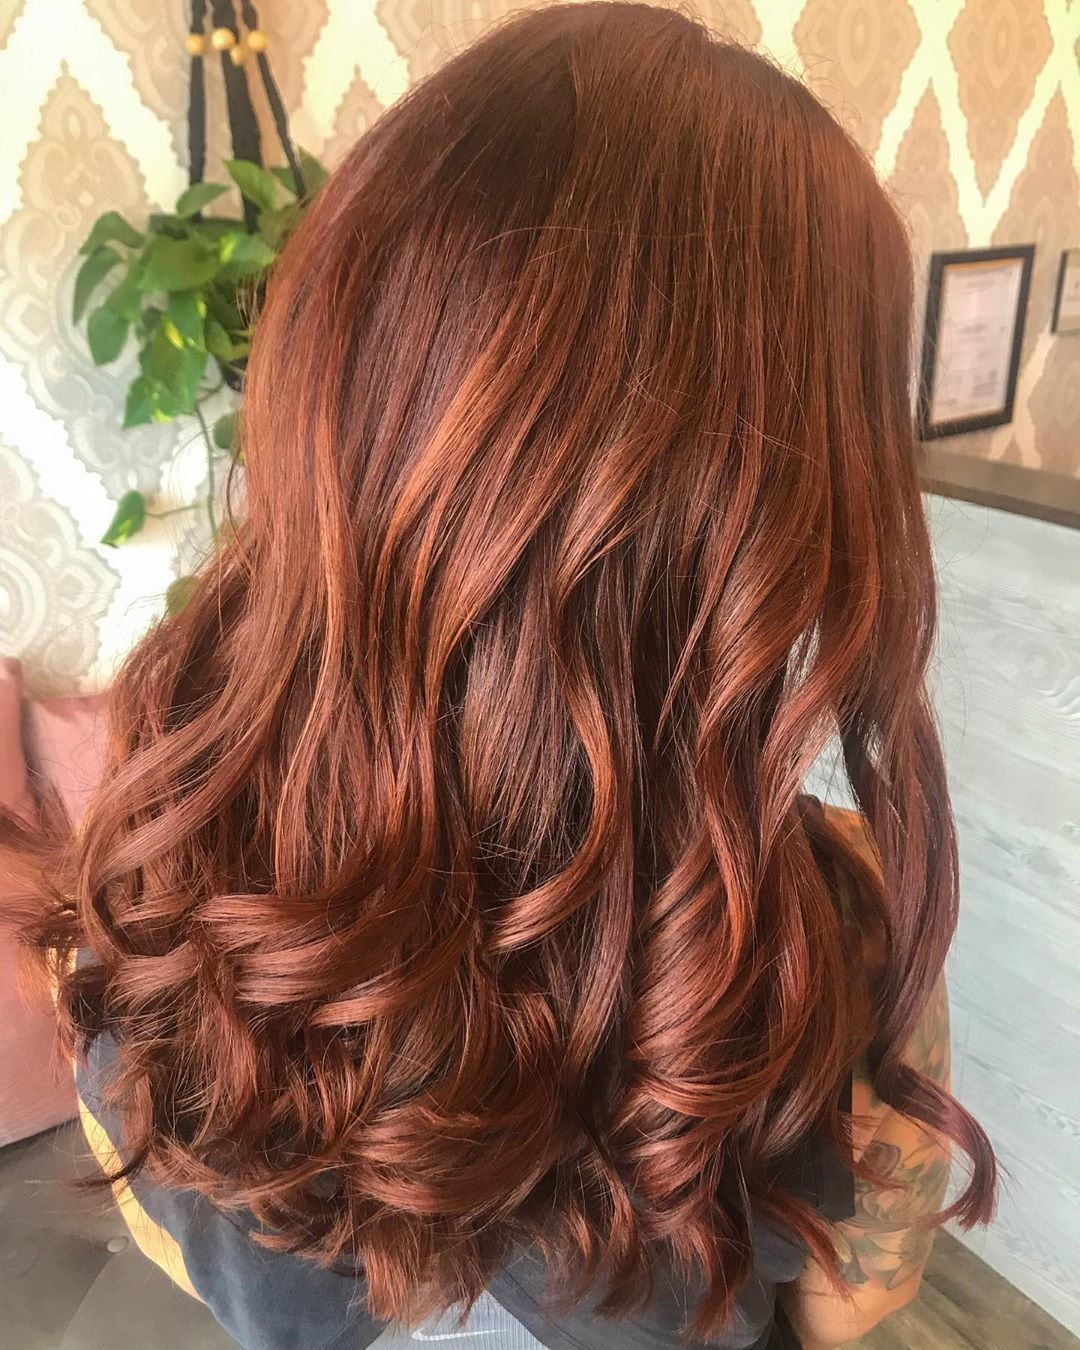 Woman with long, curly cinnamon hair with pumpkin spice tones in it